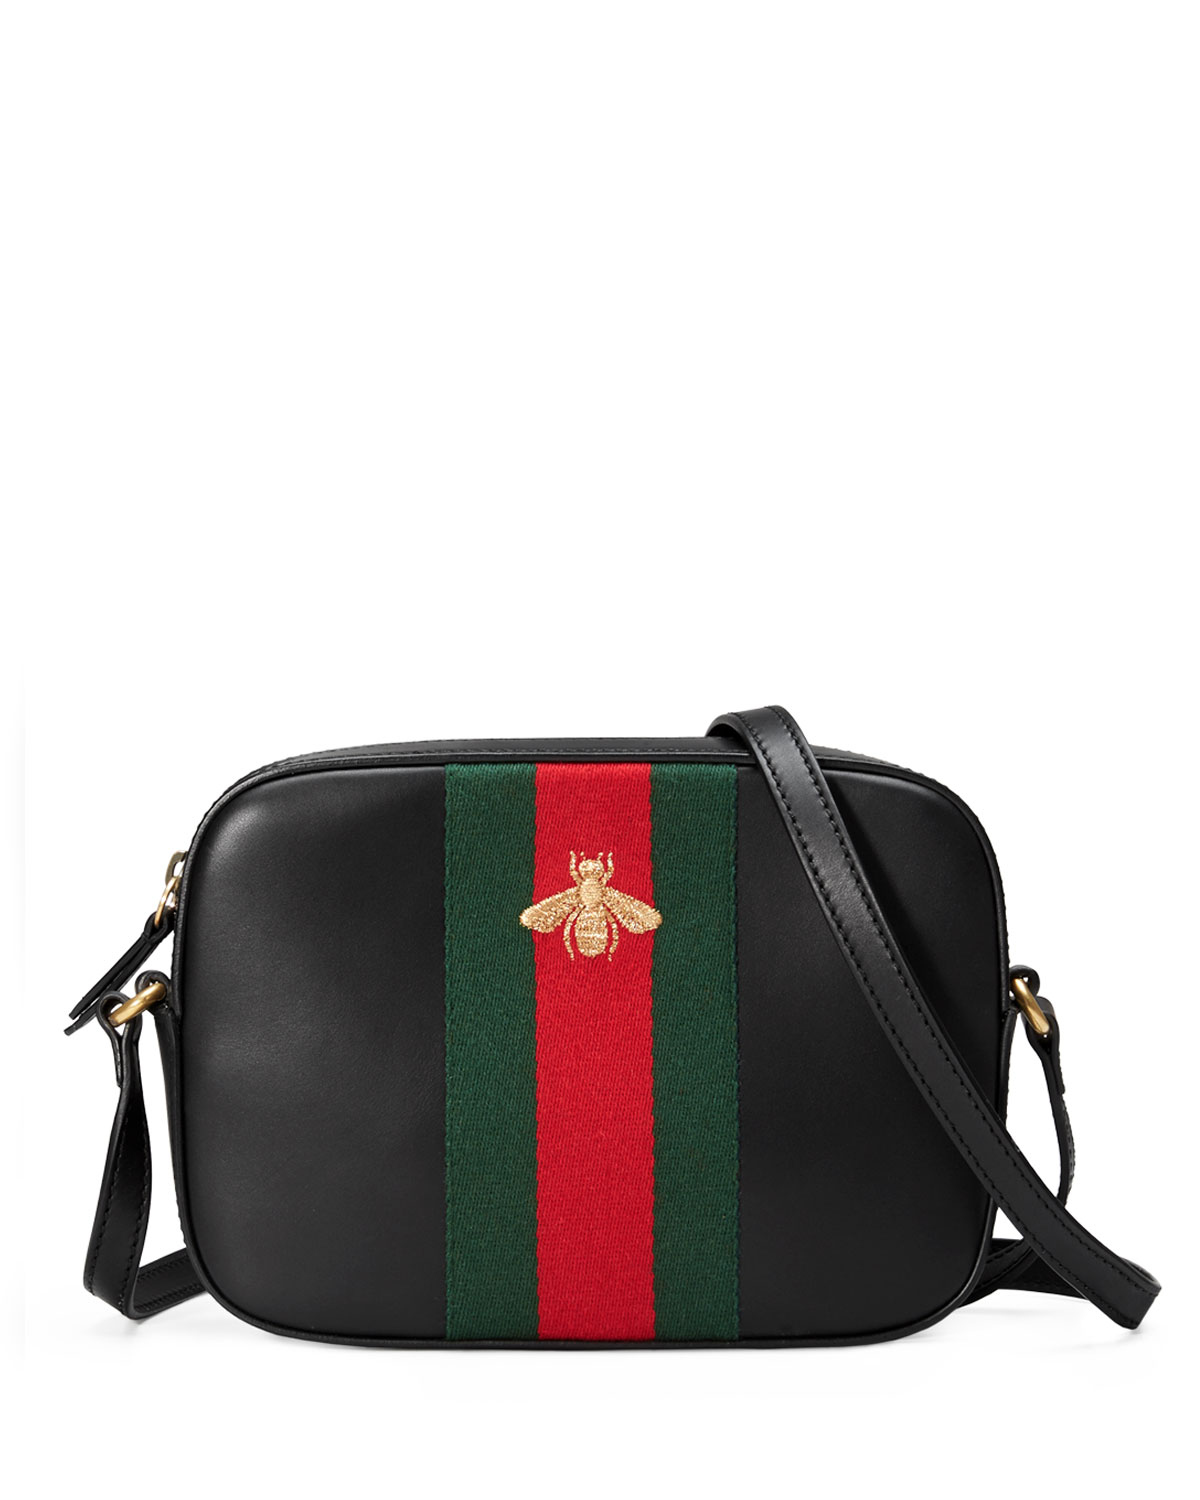 8d8474ee4e Gucci Leather Shoulder Bag